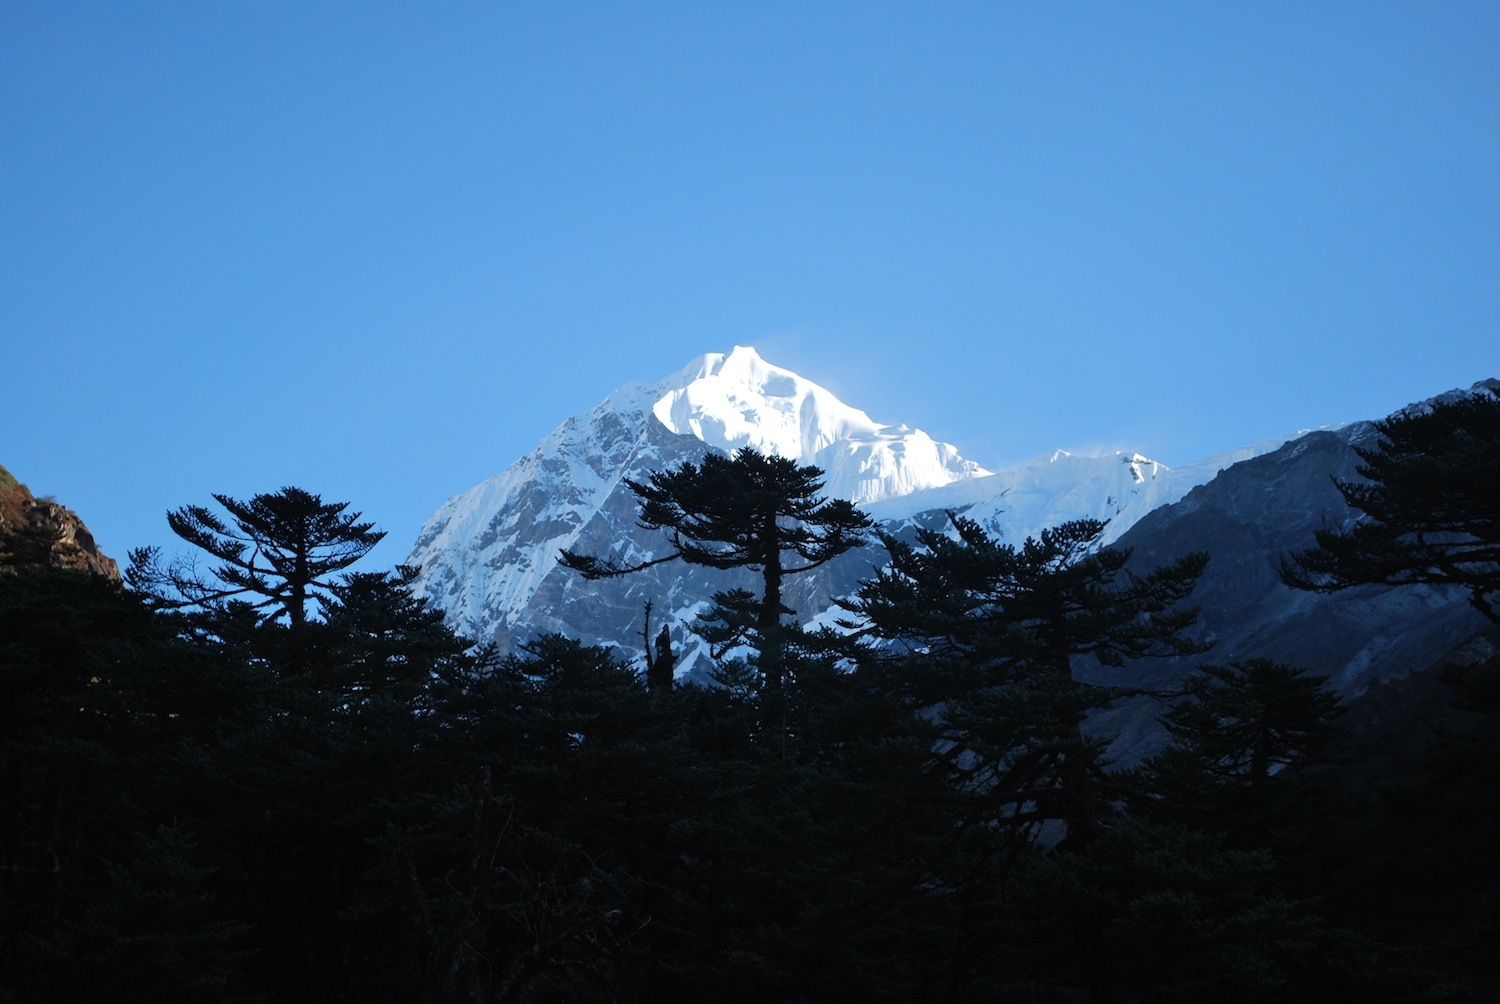 One of the five peaks of Kanchenjunga